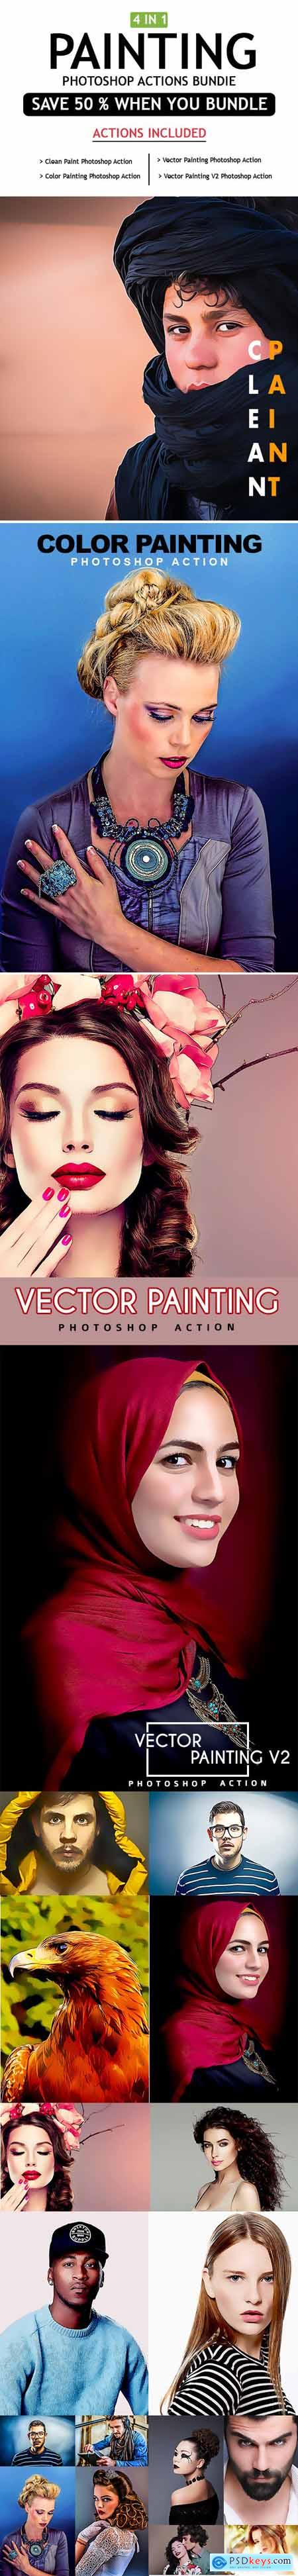 Painting 4 IN 1 Photoshop Actions Bundle 25490966